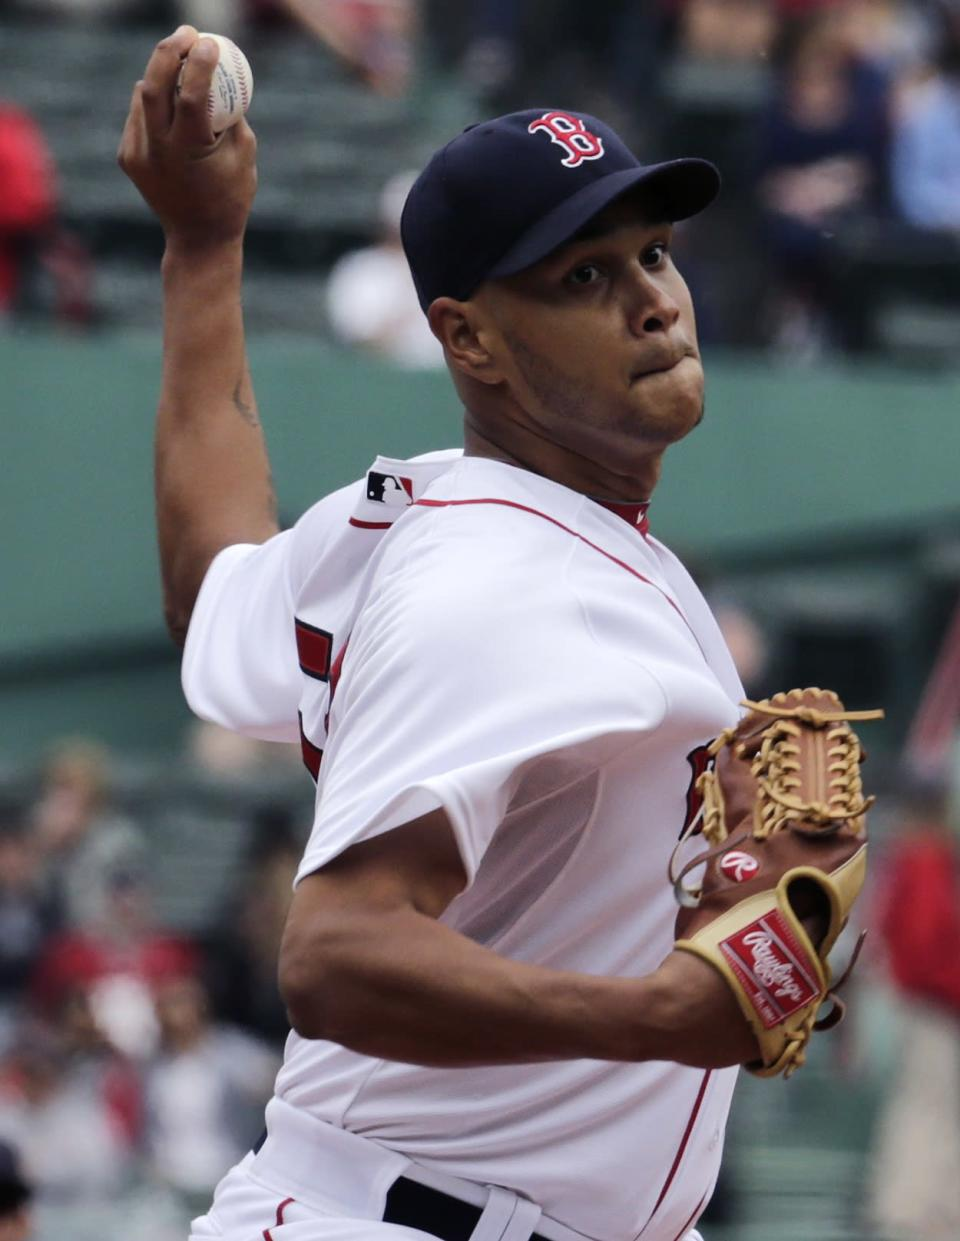 Boston Red Sox starting pitcher Eduardo Rodriguez delivers against the Minnesota Twins during the first inning in the first baseball game of a doubleheader at Fenway Park in Boston, Wednesday, June 3, 2015. (AP Photo/Charles Krupa)